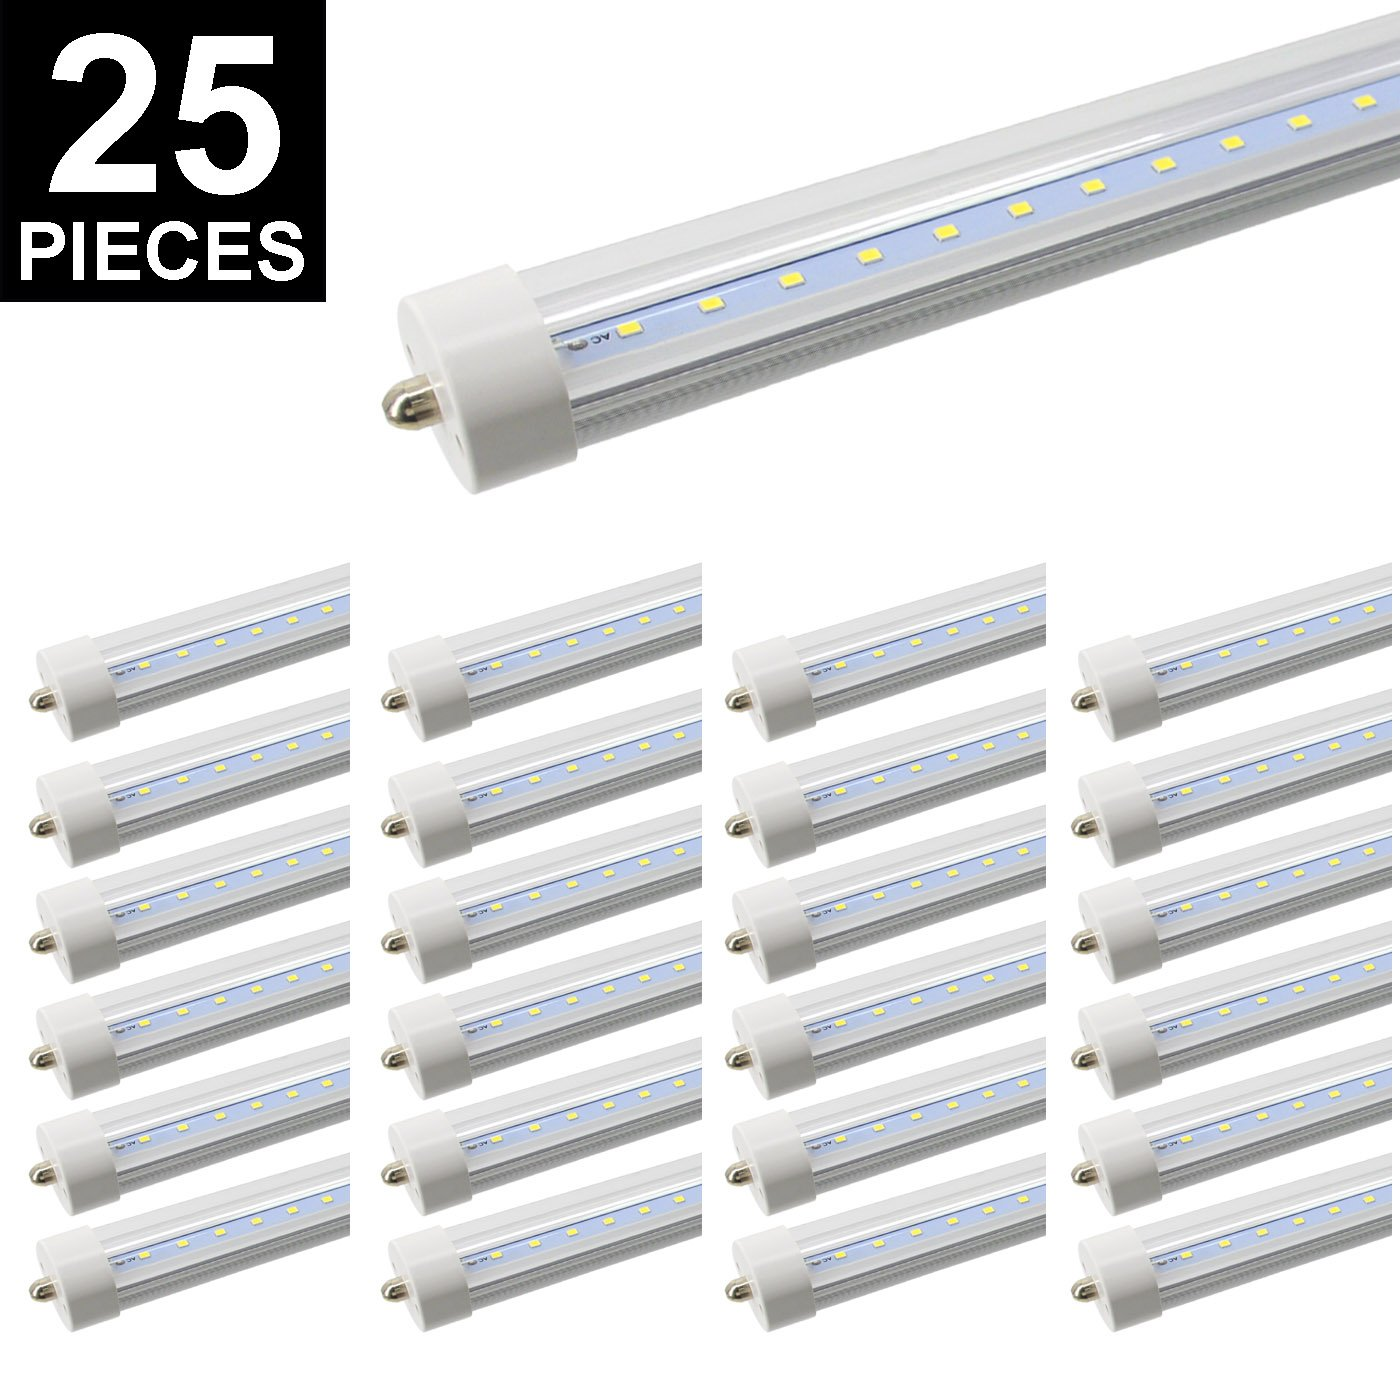 8ft LED Tube, CNSUNWAY LIGHTING 96'' 45Watt T8 FA8 Single Pin LED Bulbs With Clean Cover, 4800LM Super Bright 6000K-6500K Cool White(25 Pieces)